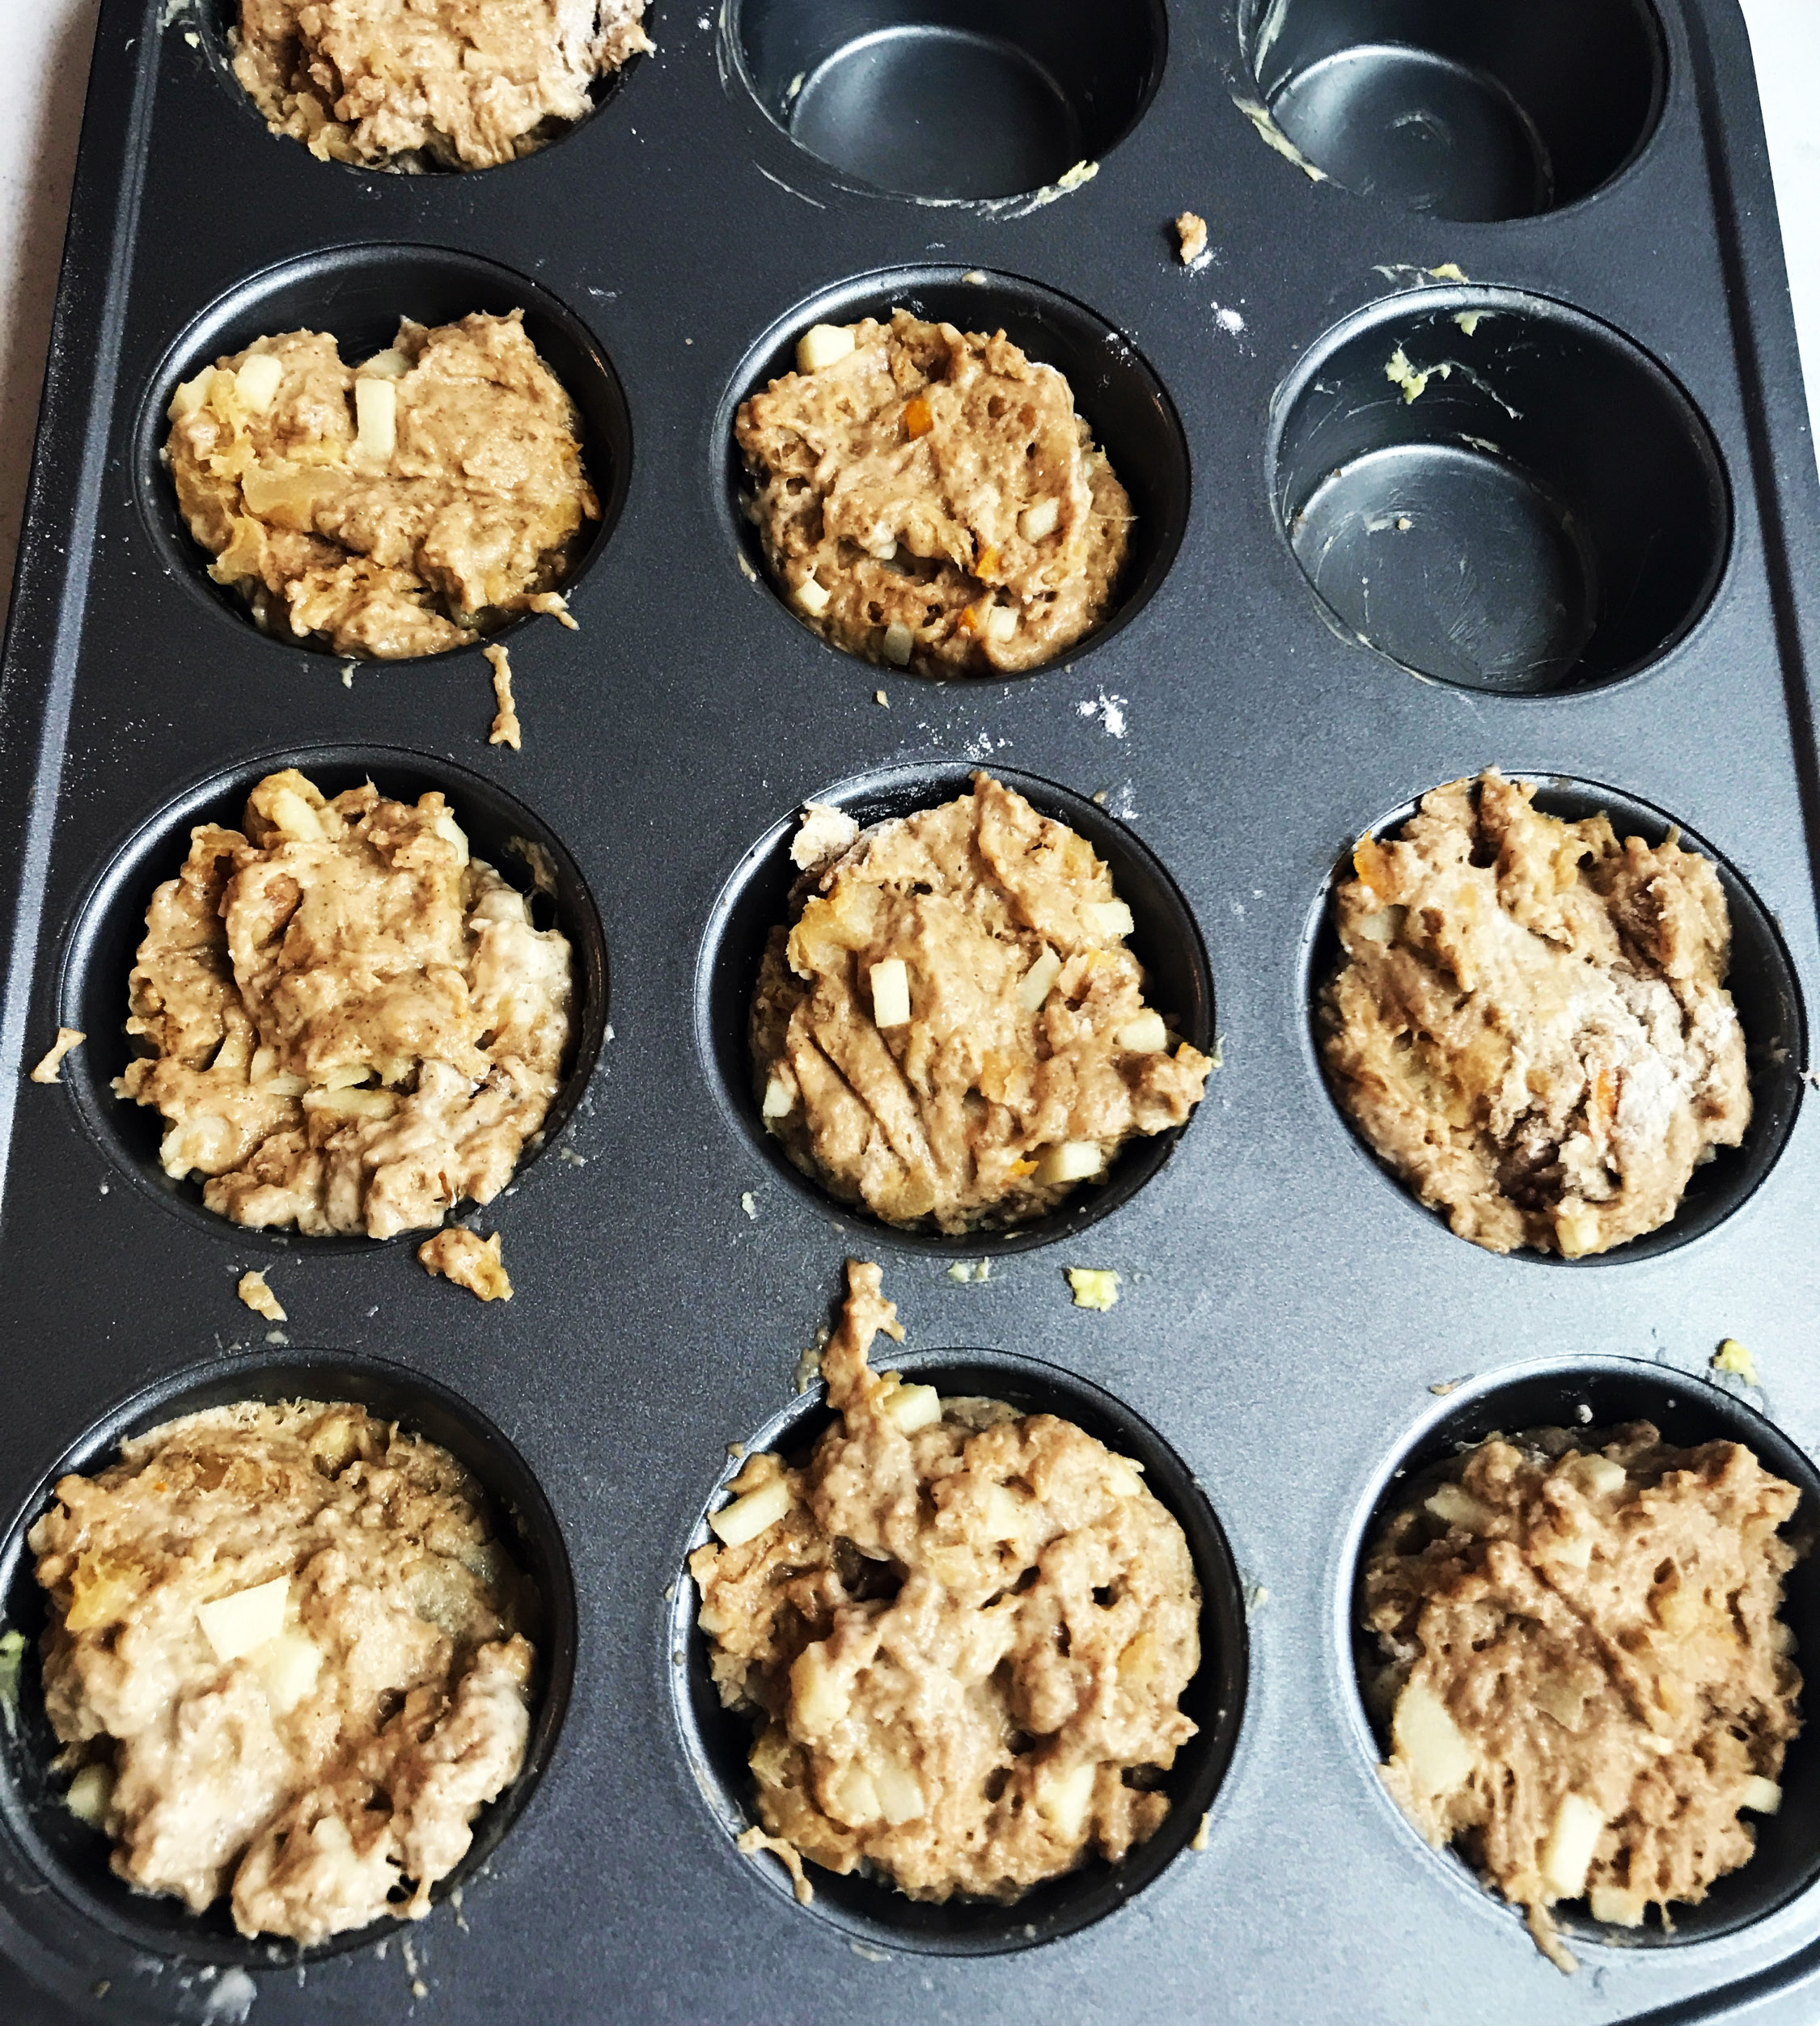 5. Place the muffins in the oven for 15 minutes. Scoop out and enjoy!